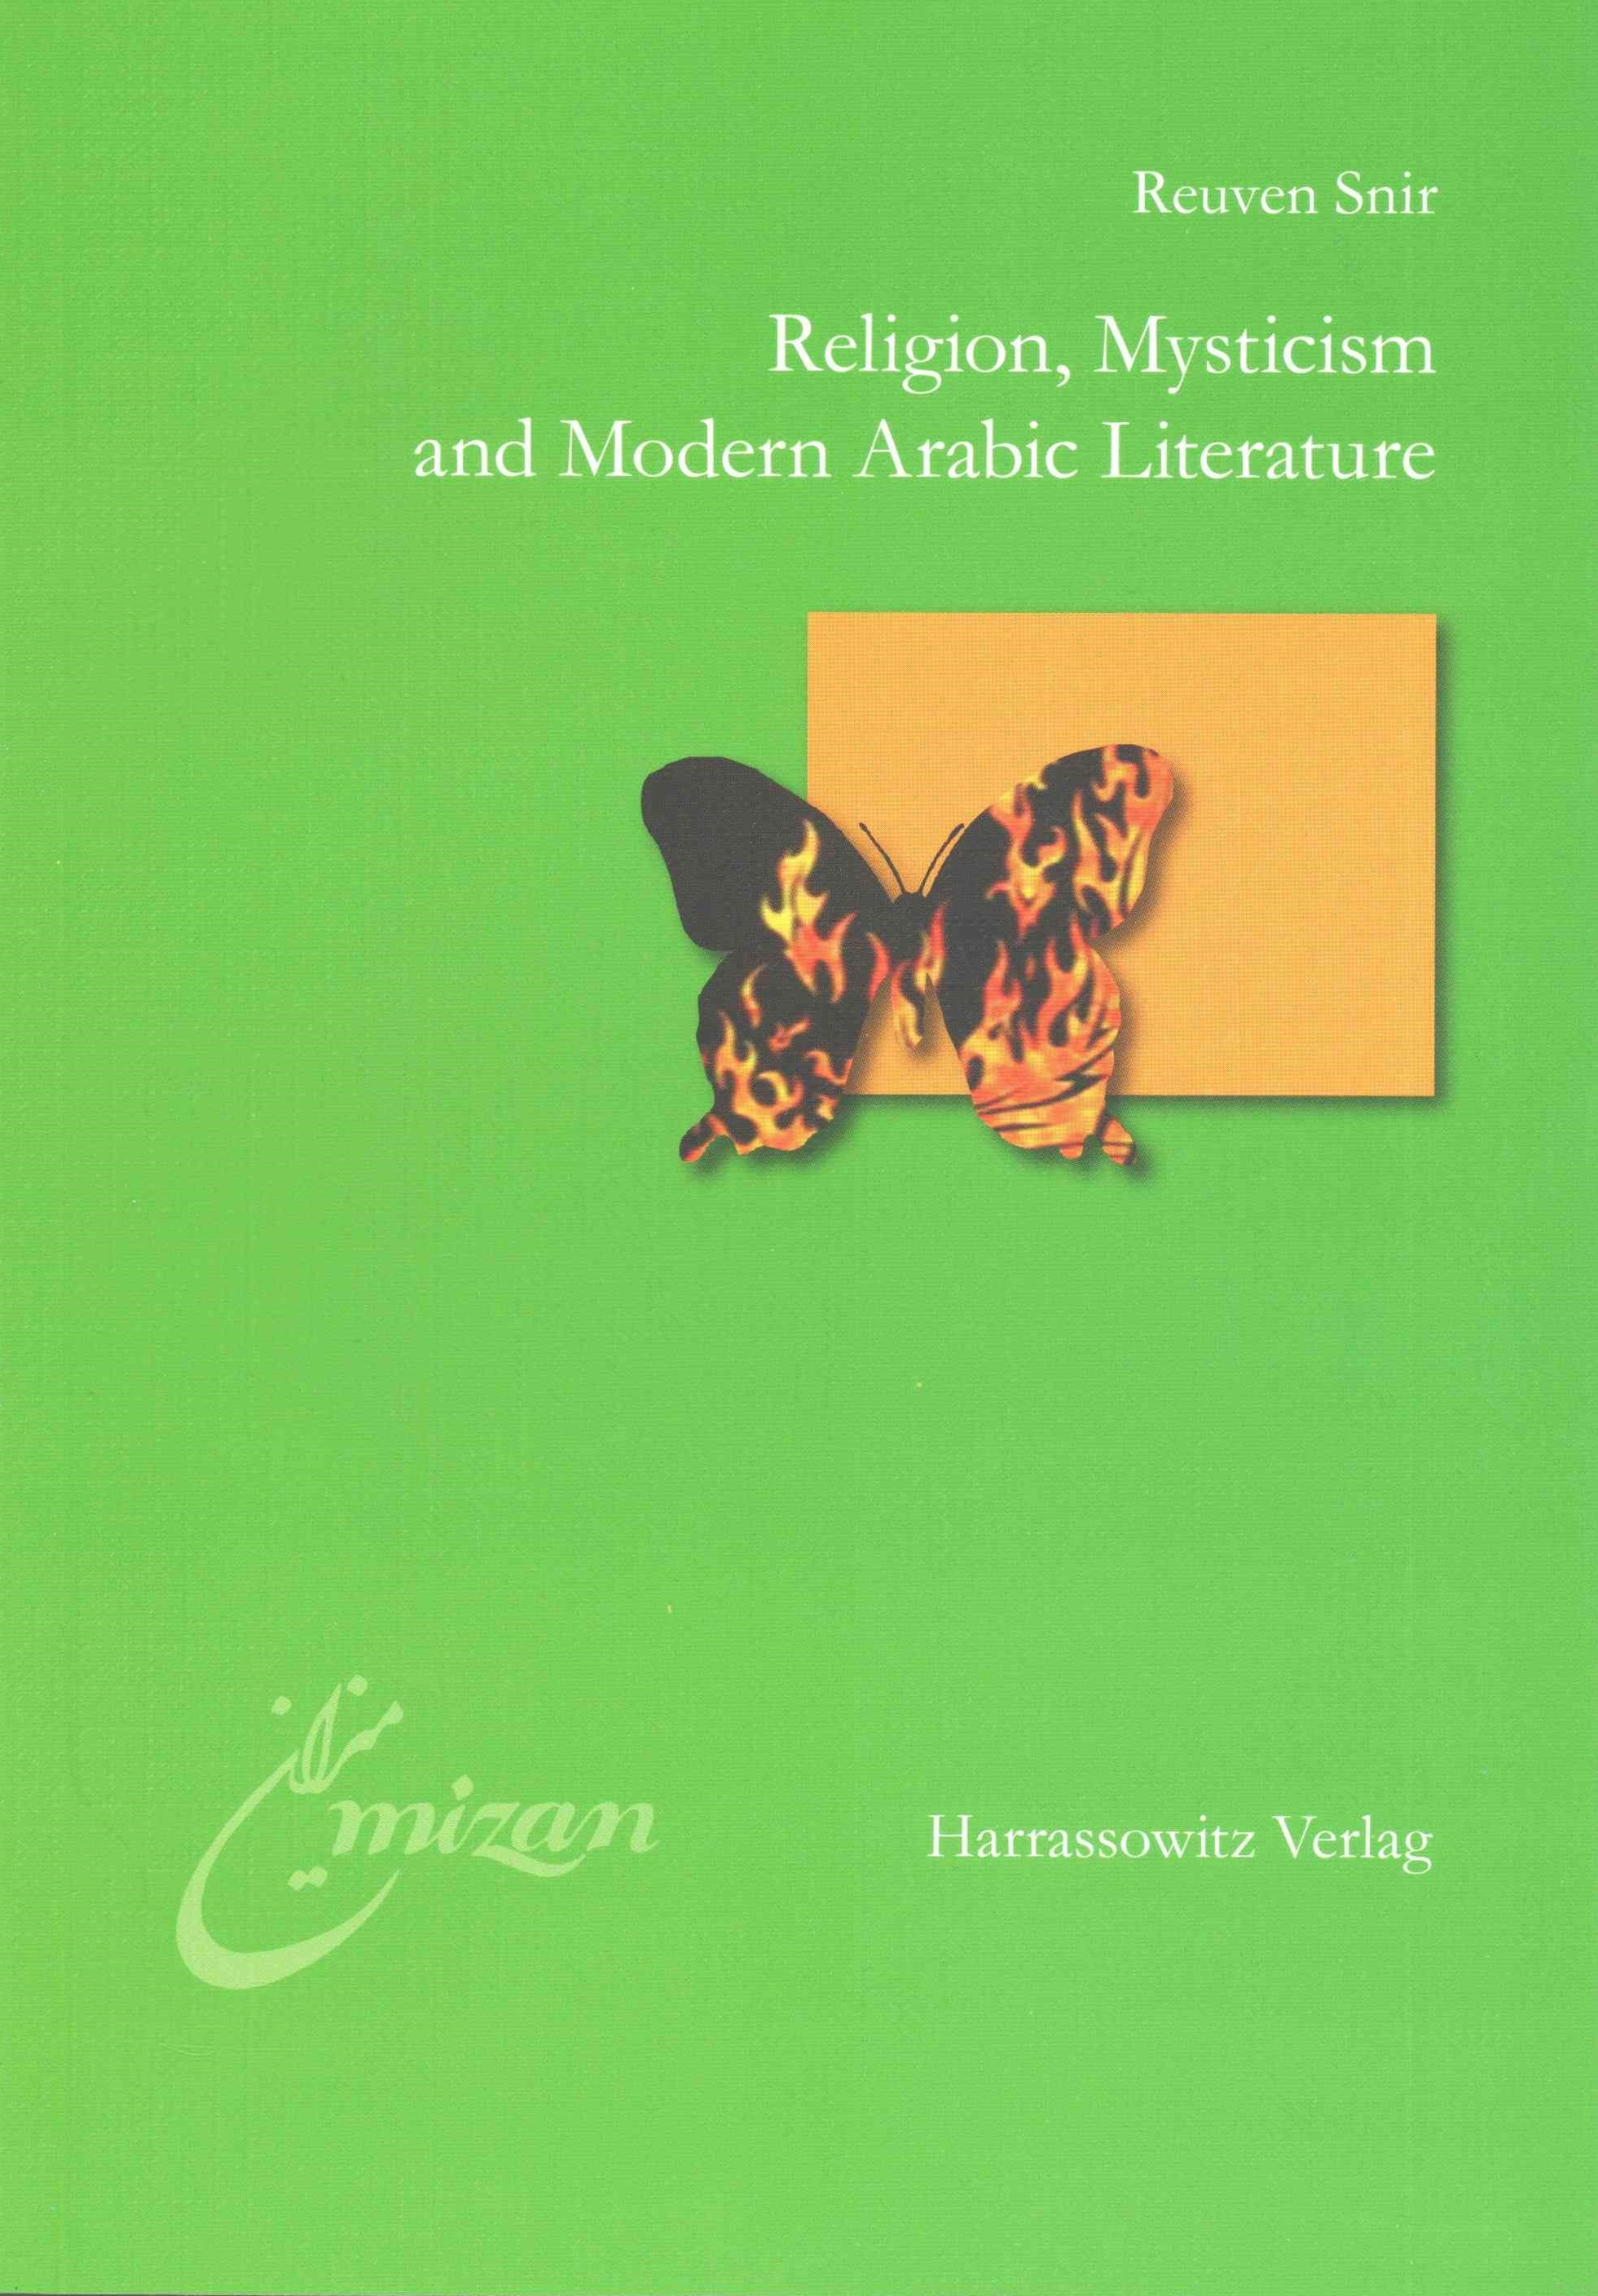 Religion, Mysticism and Modern Arabic Literature